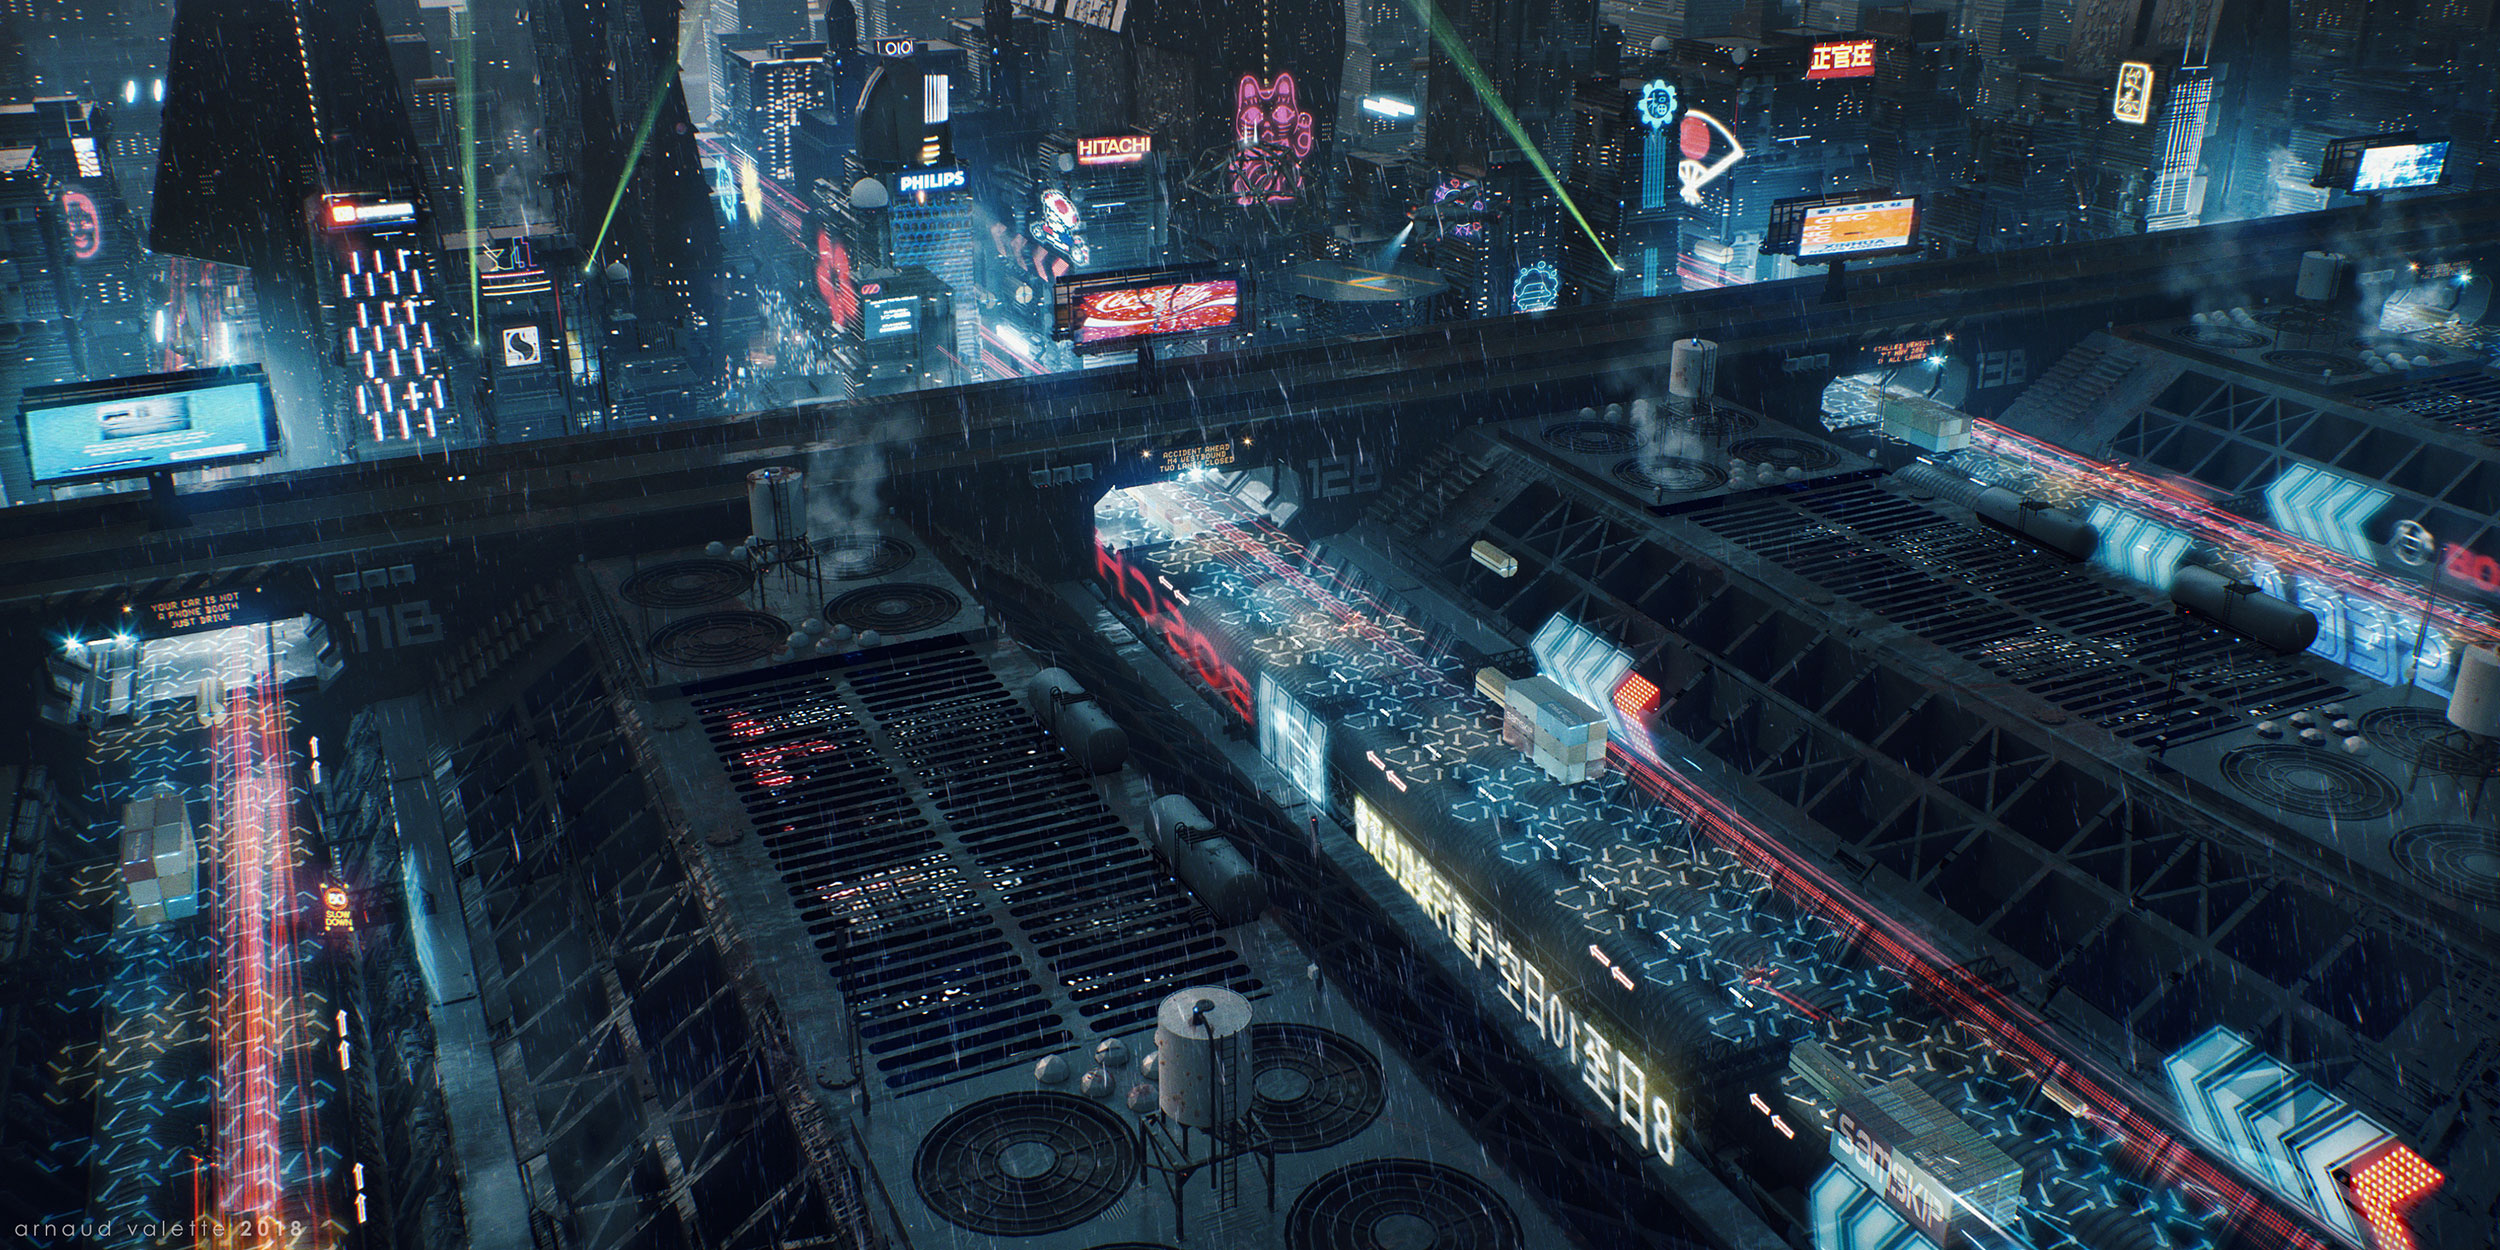 CITIES_05_Concept_03_web